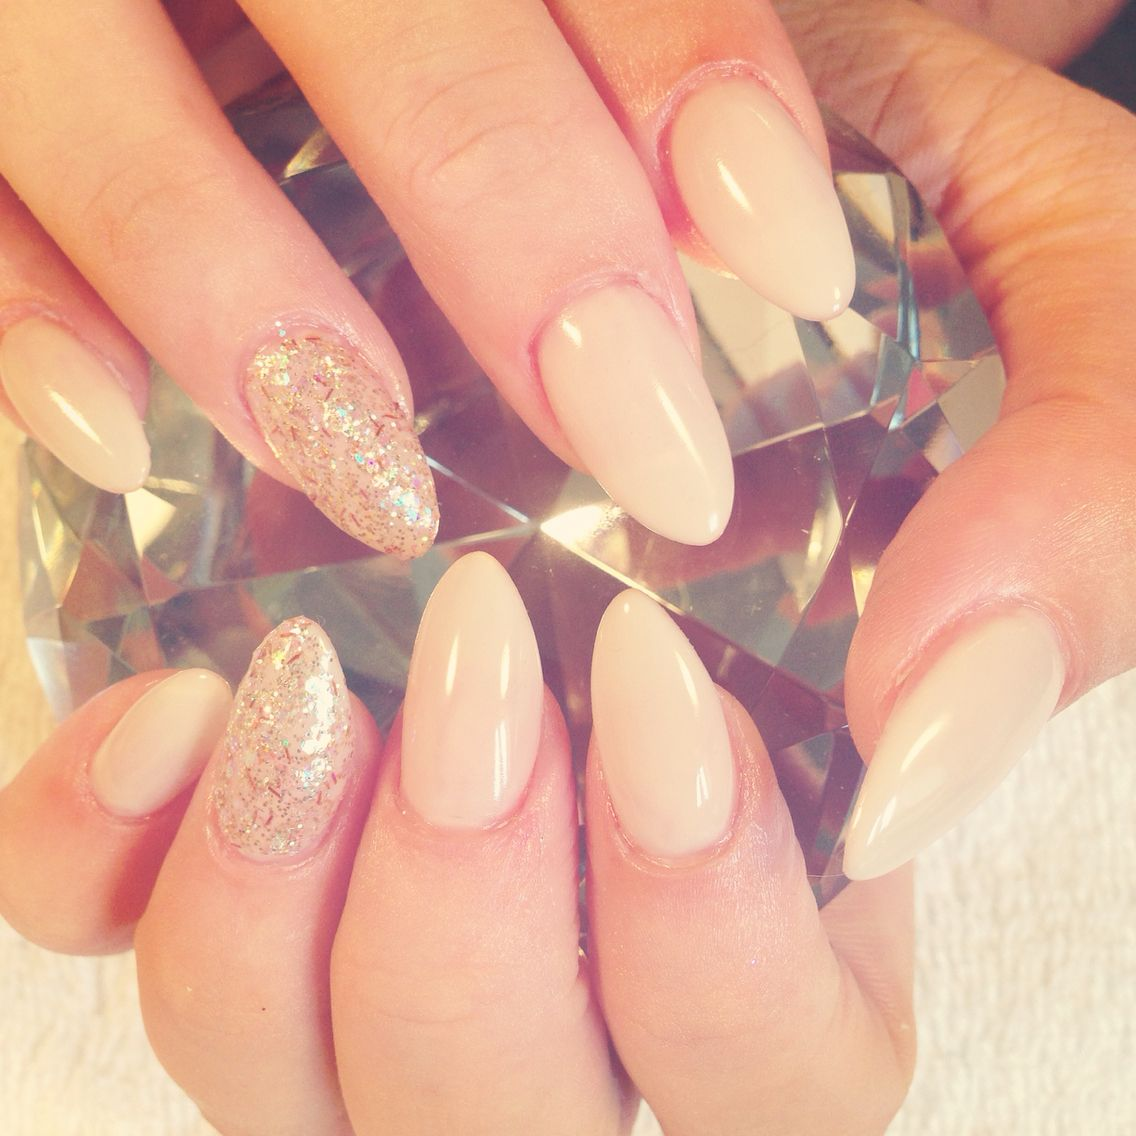 Nude and gold almond shape acrylic nails | New nail ideas ...